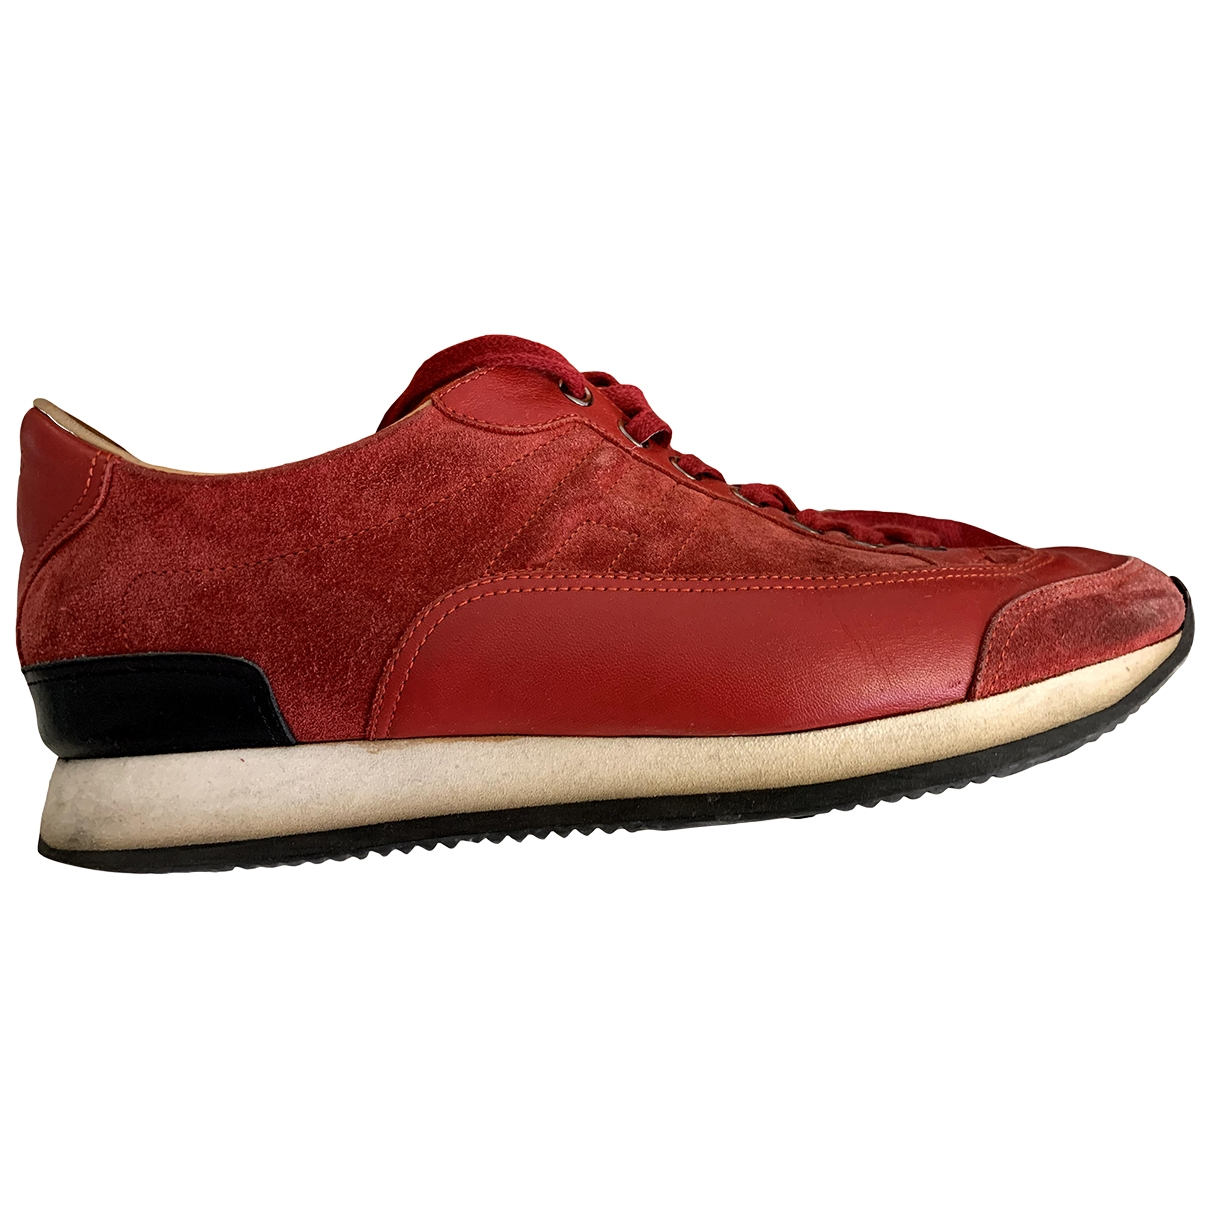 Hermès Goal Red Leather Trainers for Men 42 EU